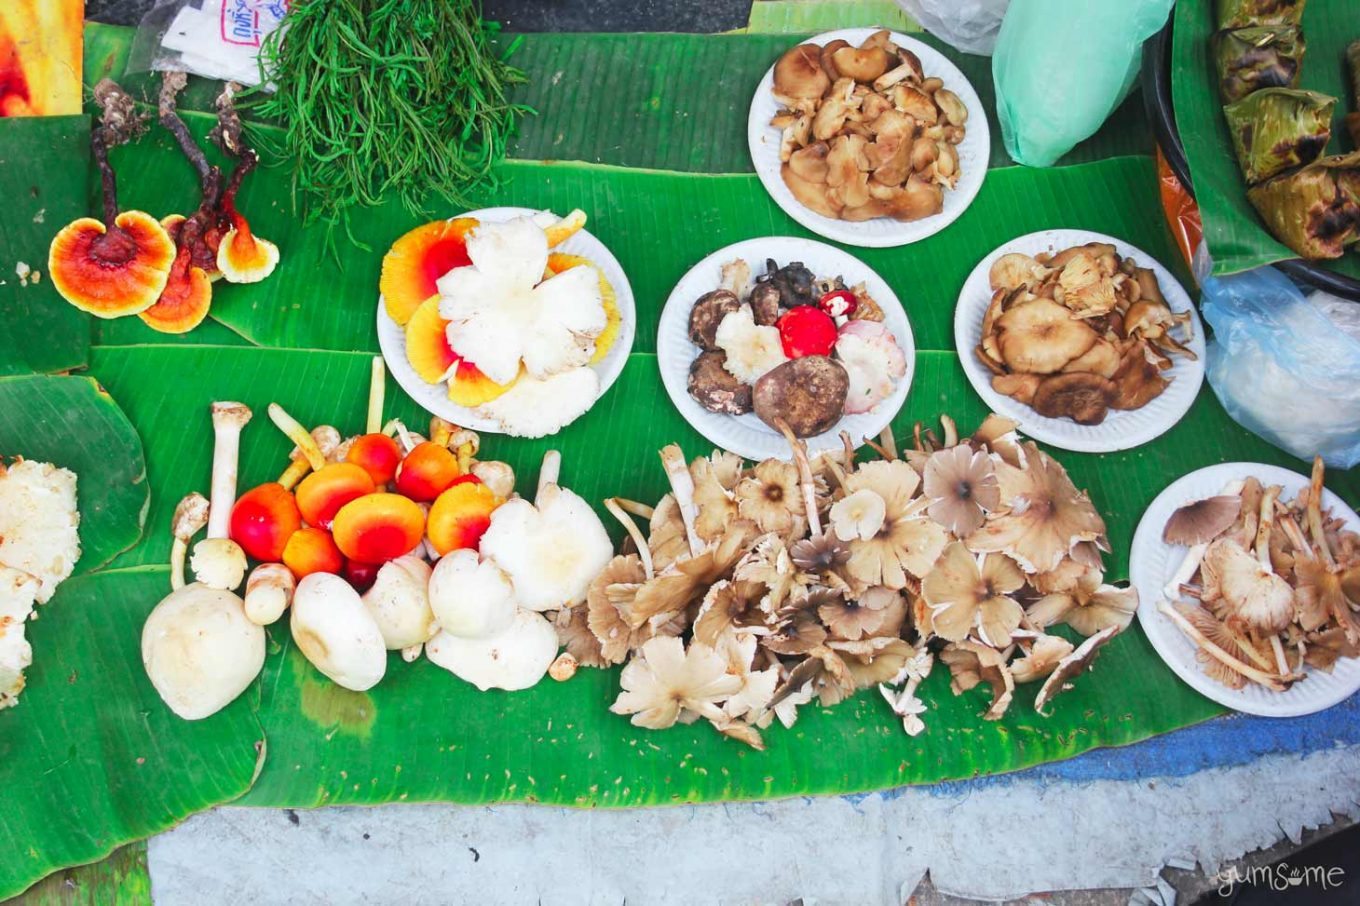 Freshly-picked mushrooms on sale at for sale at Kad Ton Payom, Chiang Mai. | yumsome.com